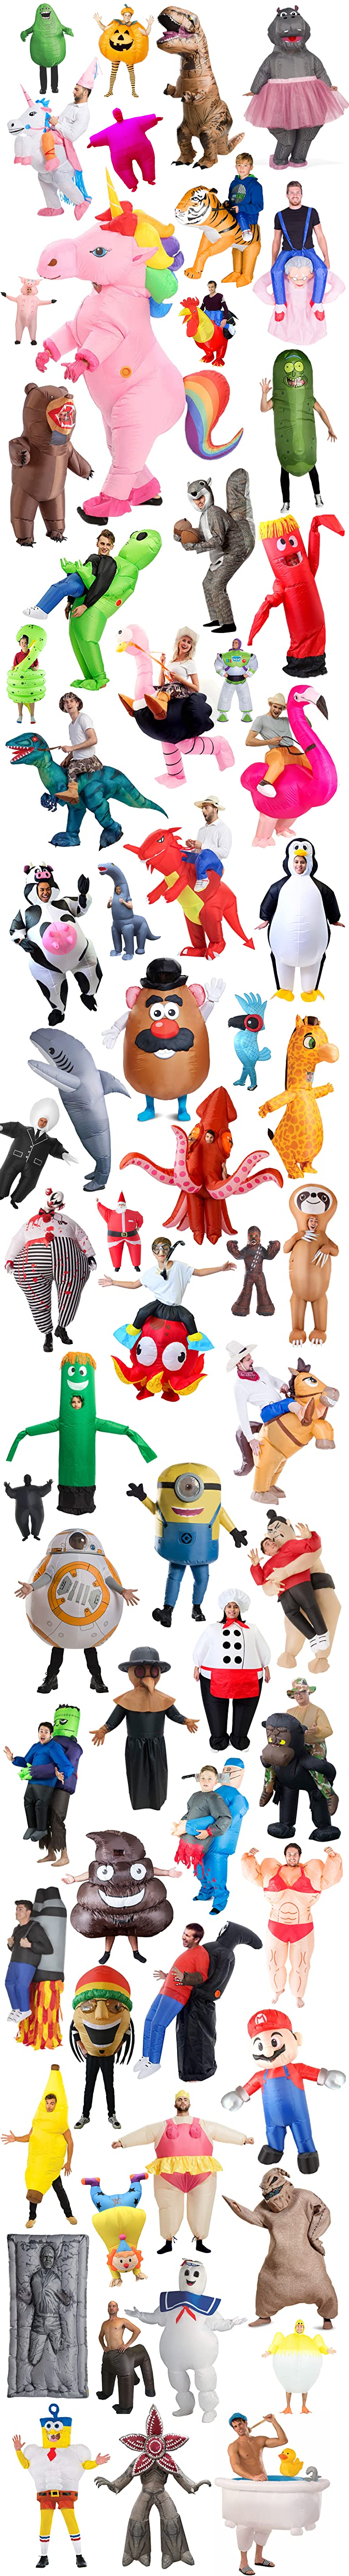 The-Best-Blow-Up-Inflatable-Costumes